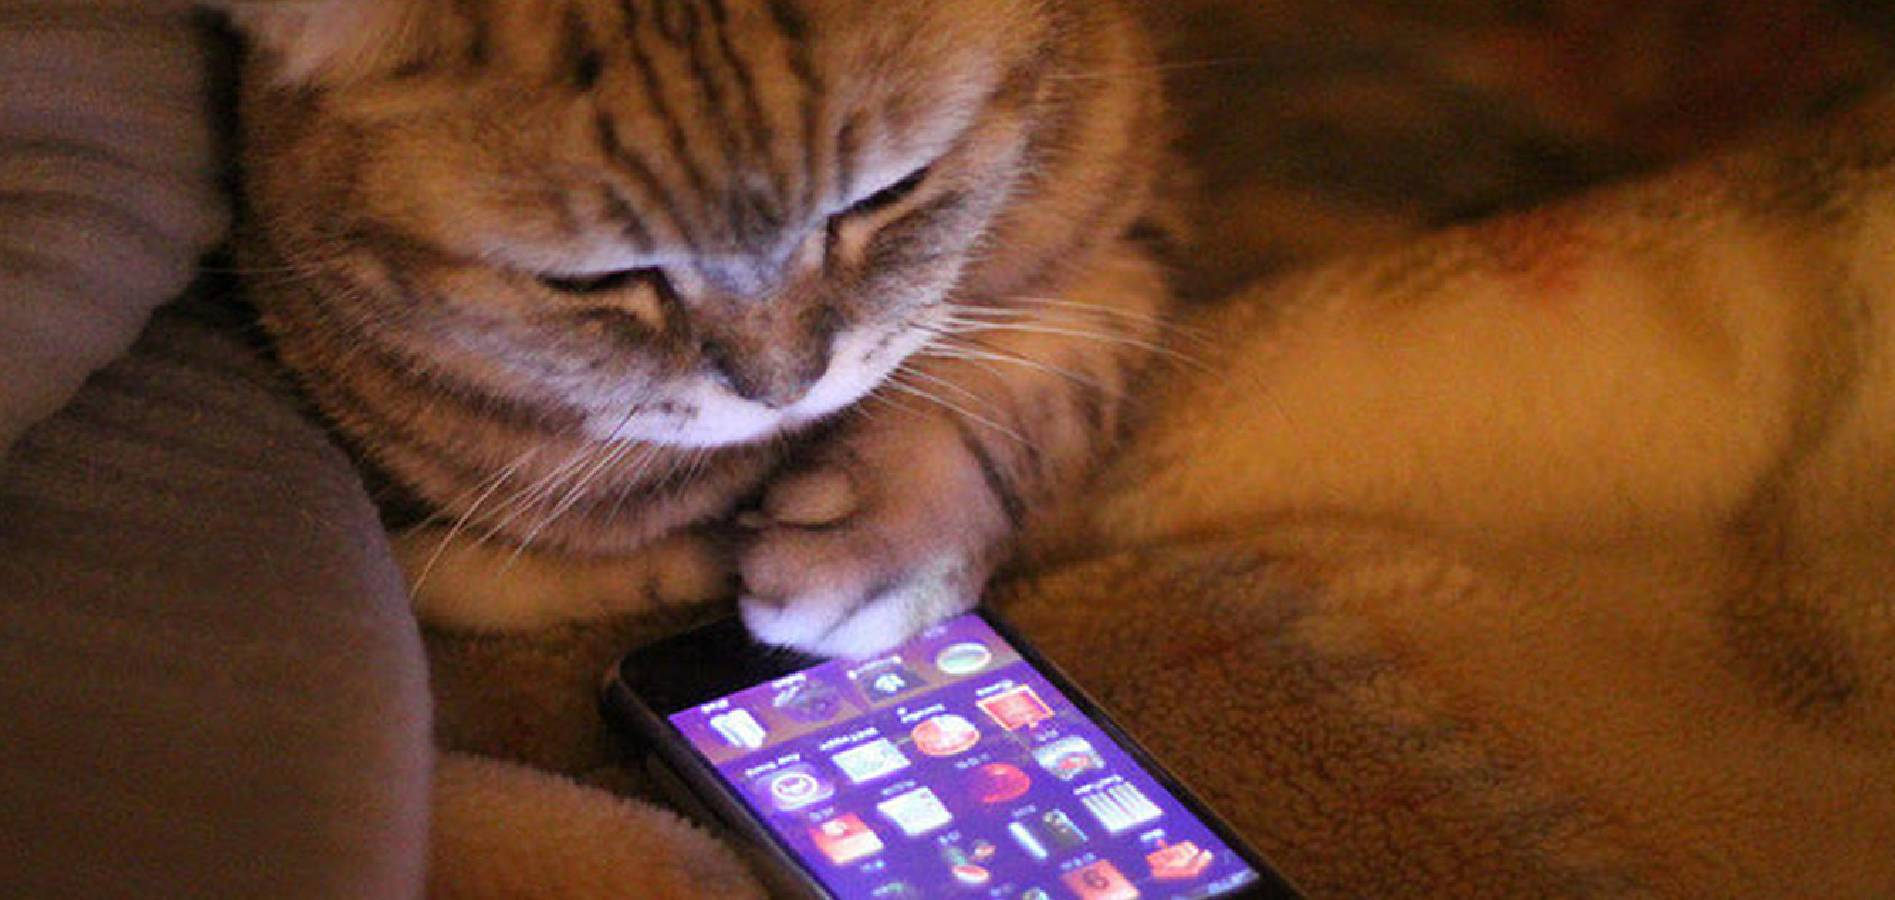 cat looking at apps on phone